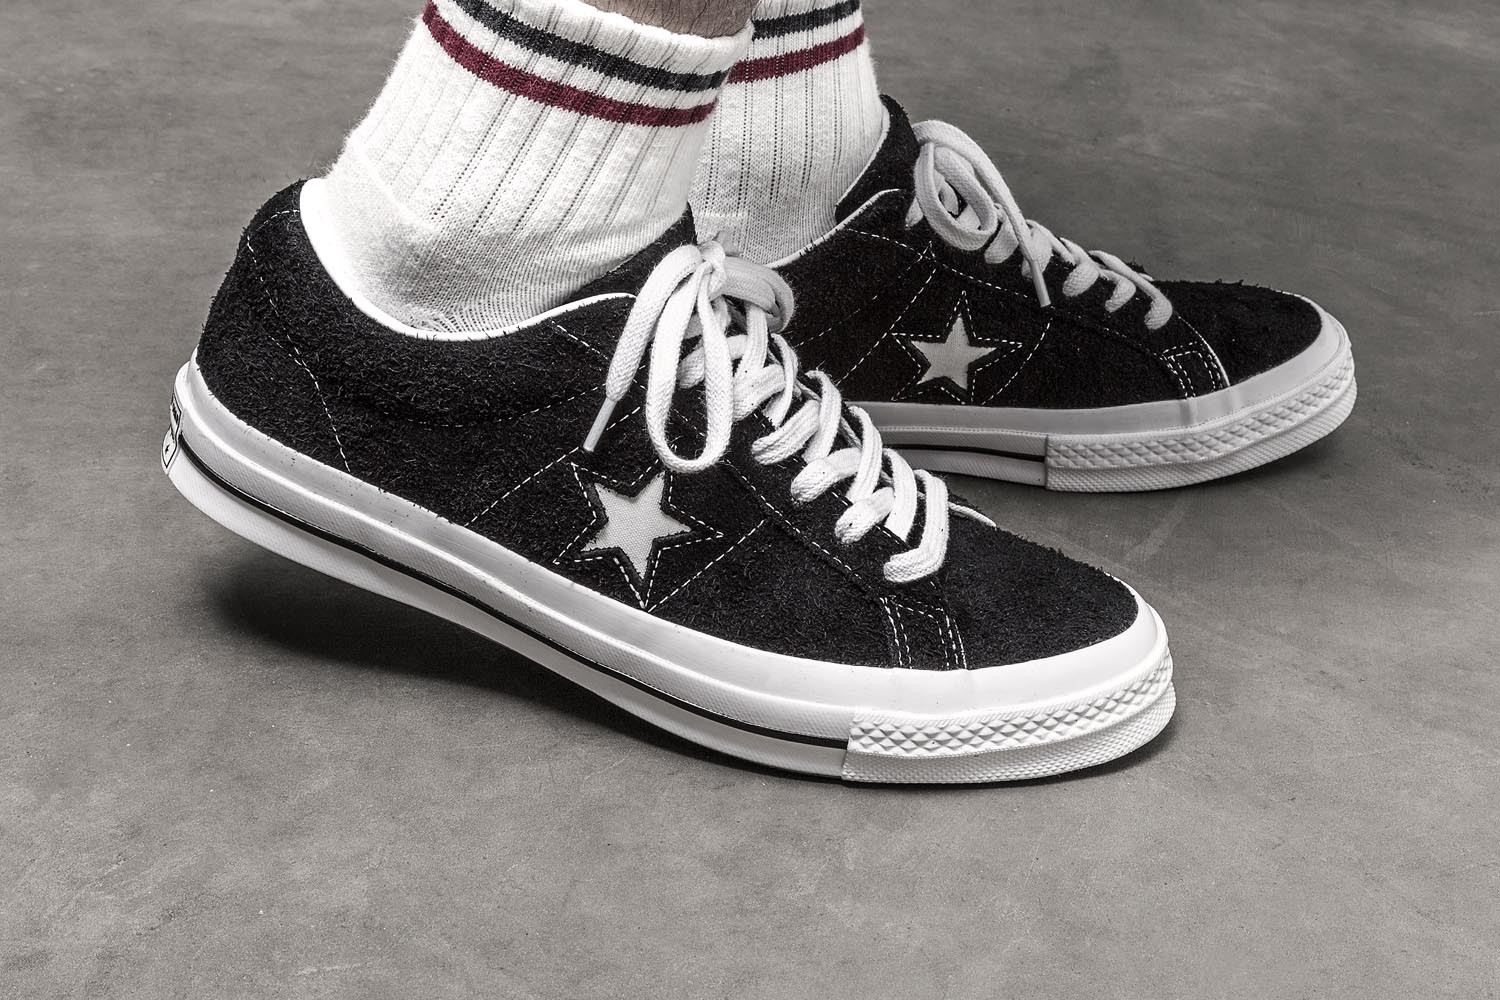 87952cb9c95f The History Behind the Converse One Star